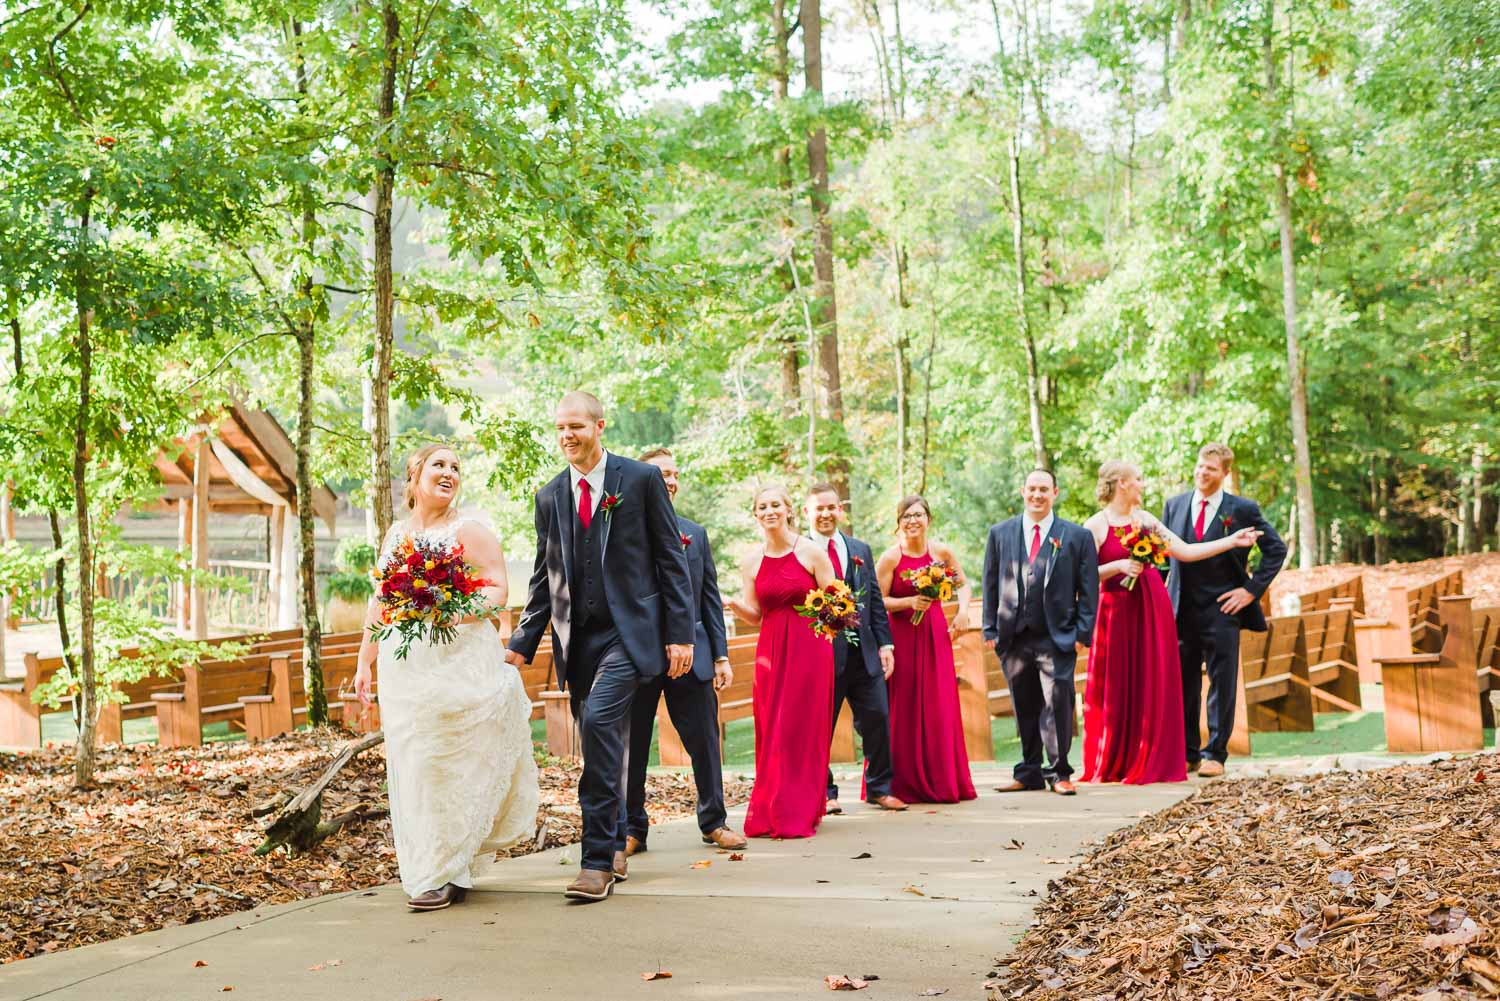 bride and groom plus bridal party walking along concrete path in October at Indigo Falls wedding venue in North West GA